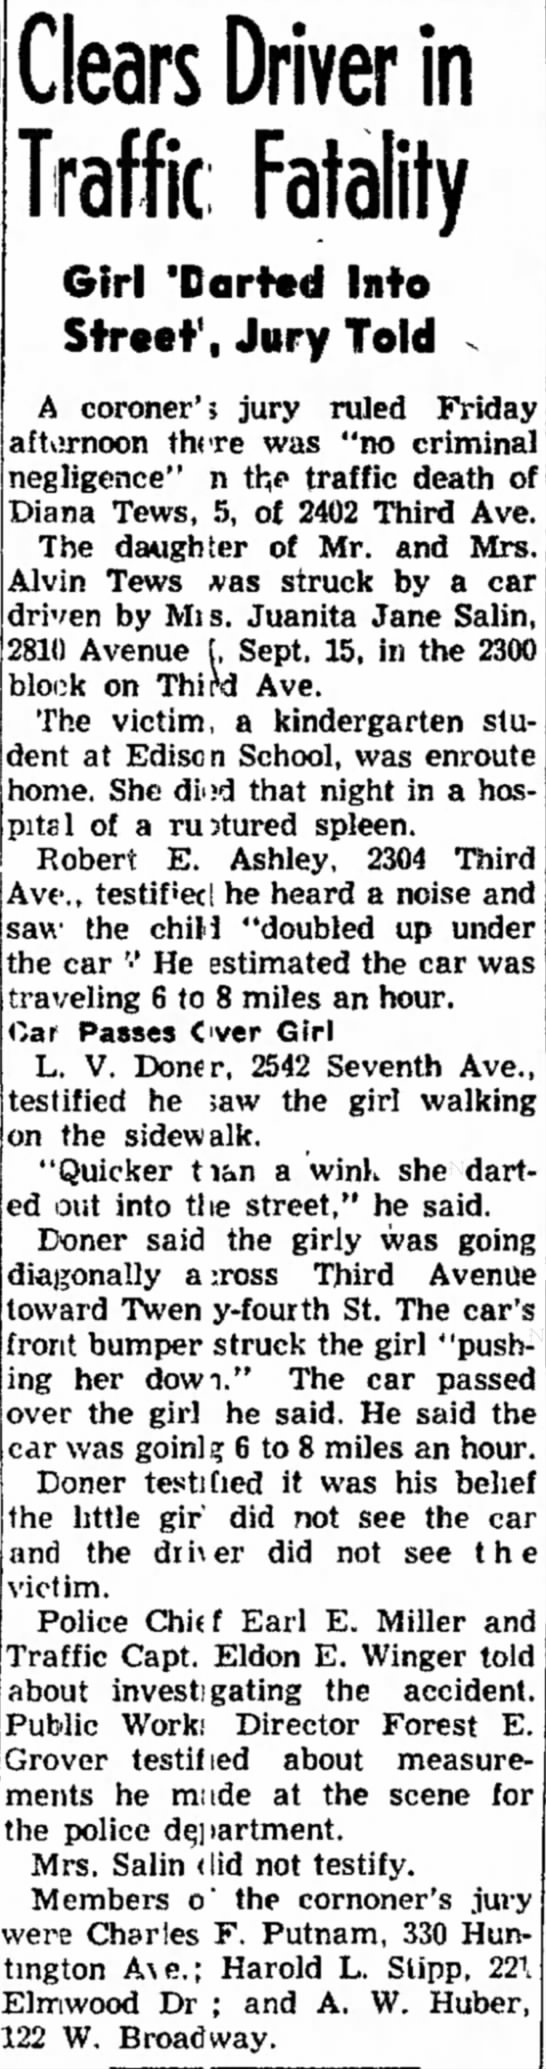 Clears Driver in Traffic Fatality - Council Bluffs Nonpareil - 26 Sep 1953, page 16 -